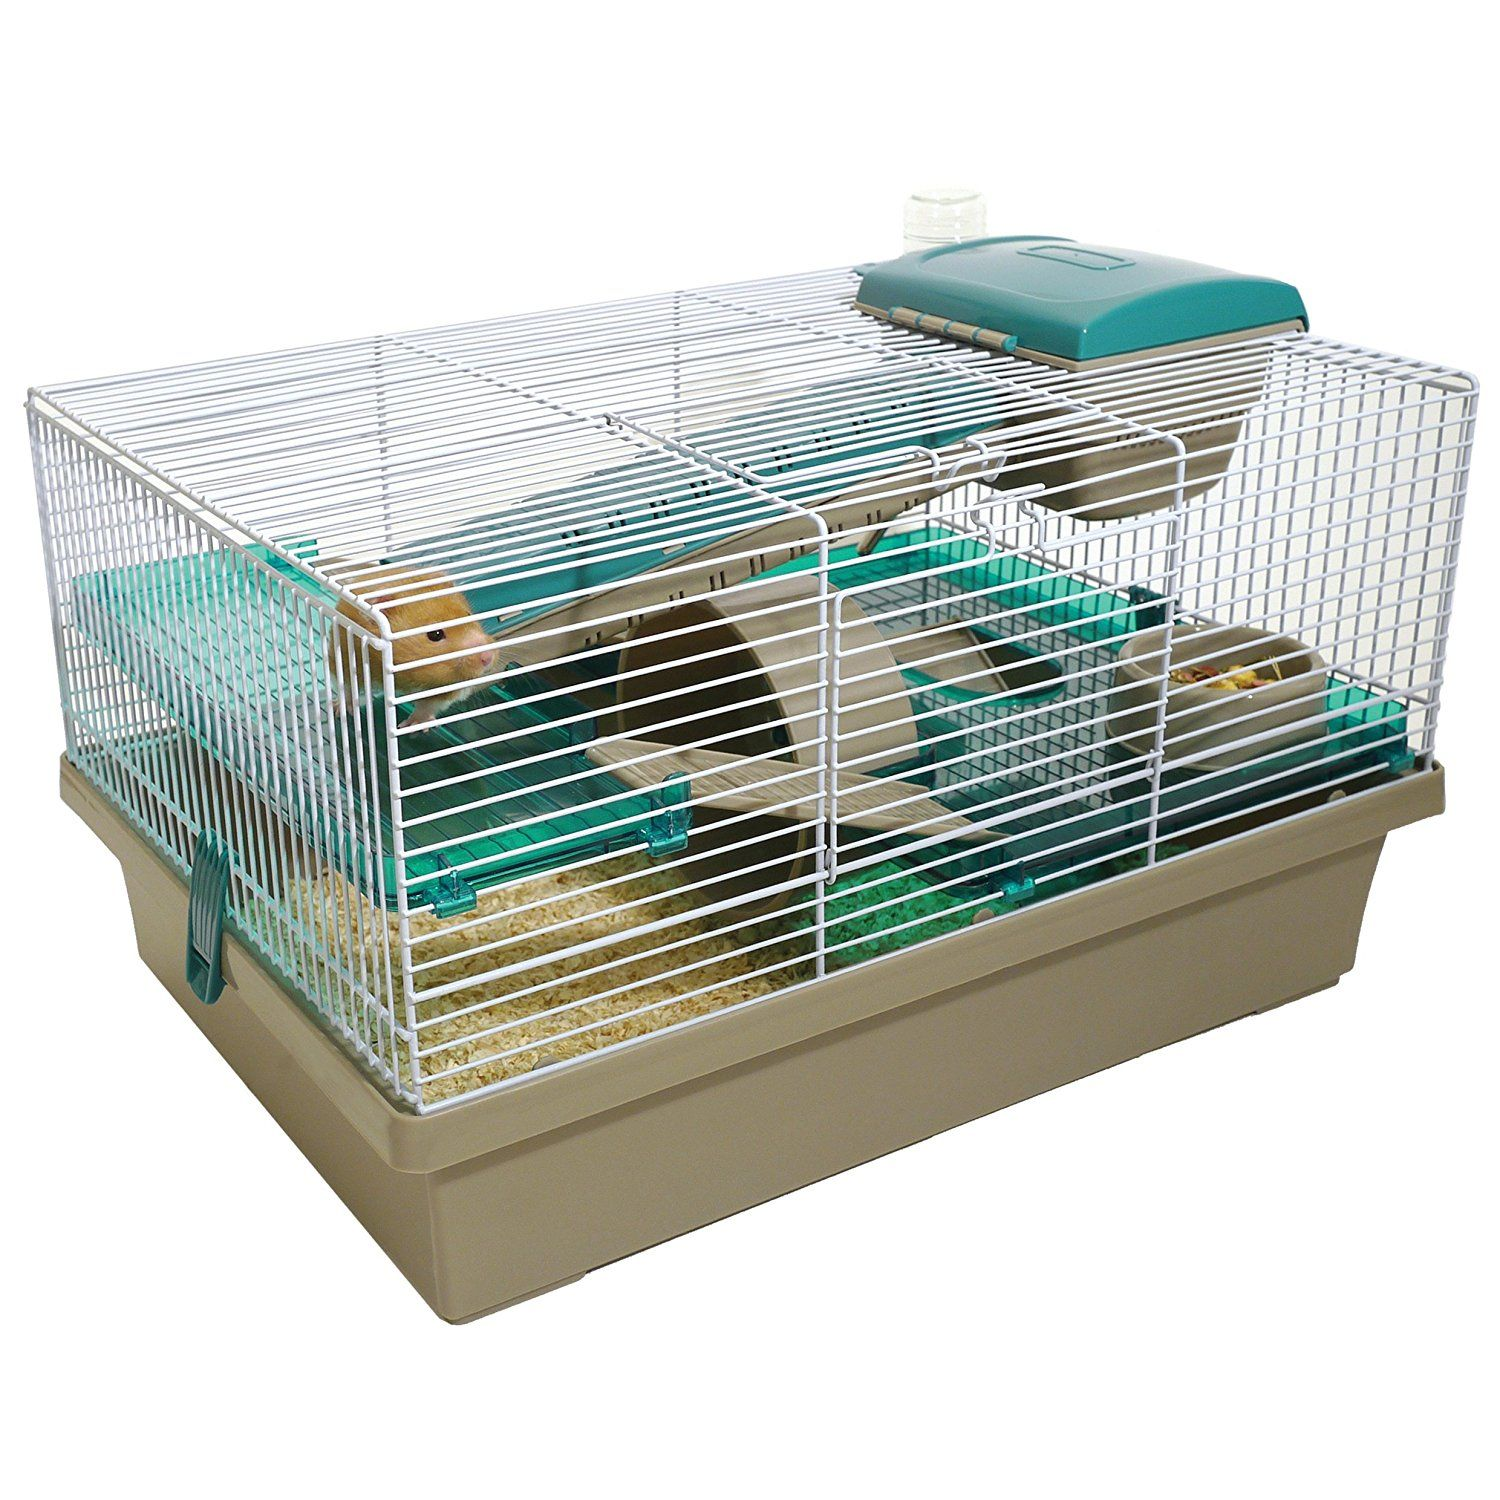 Rosewood Pico Hamster Home Translucent Teal Amazon Co Uk Pet Supplies Small Pets Hamster House Hamster Cage